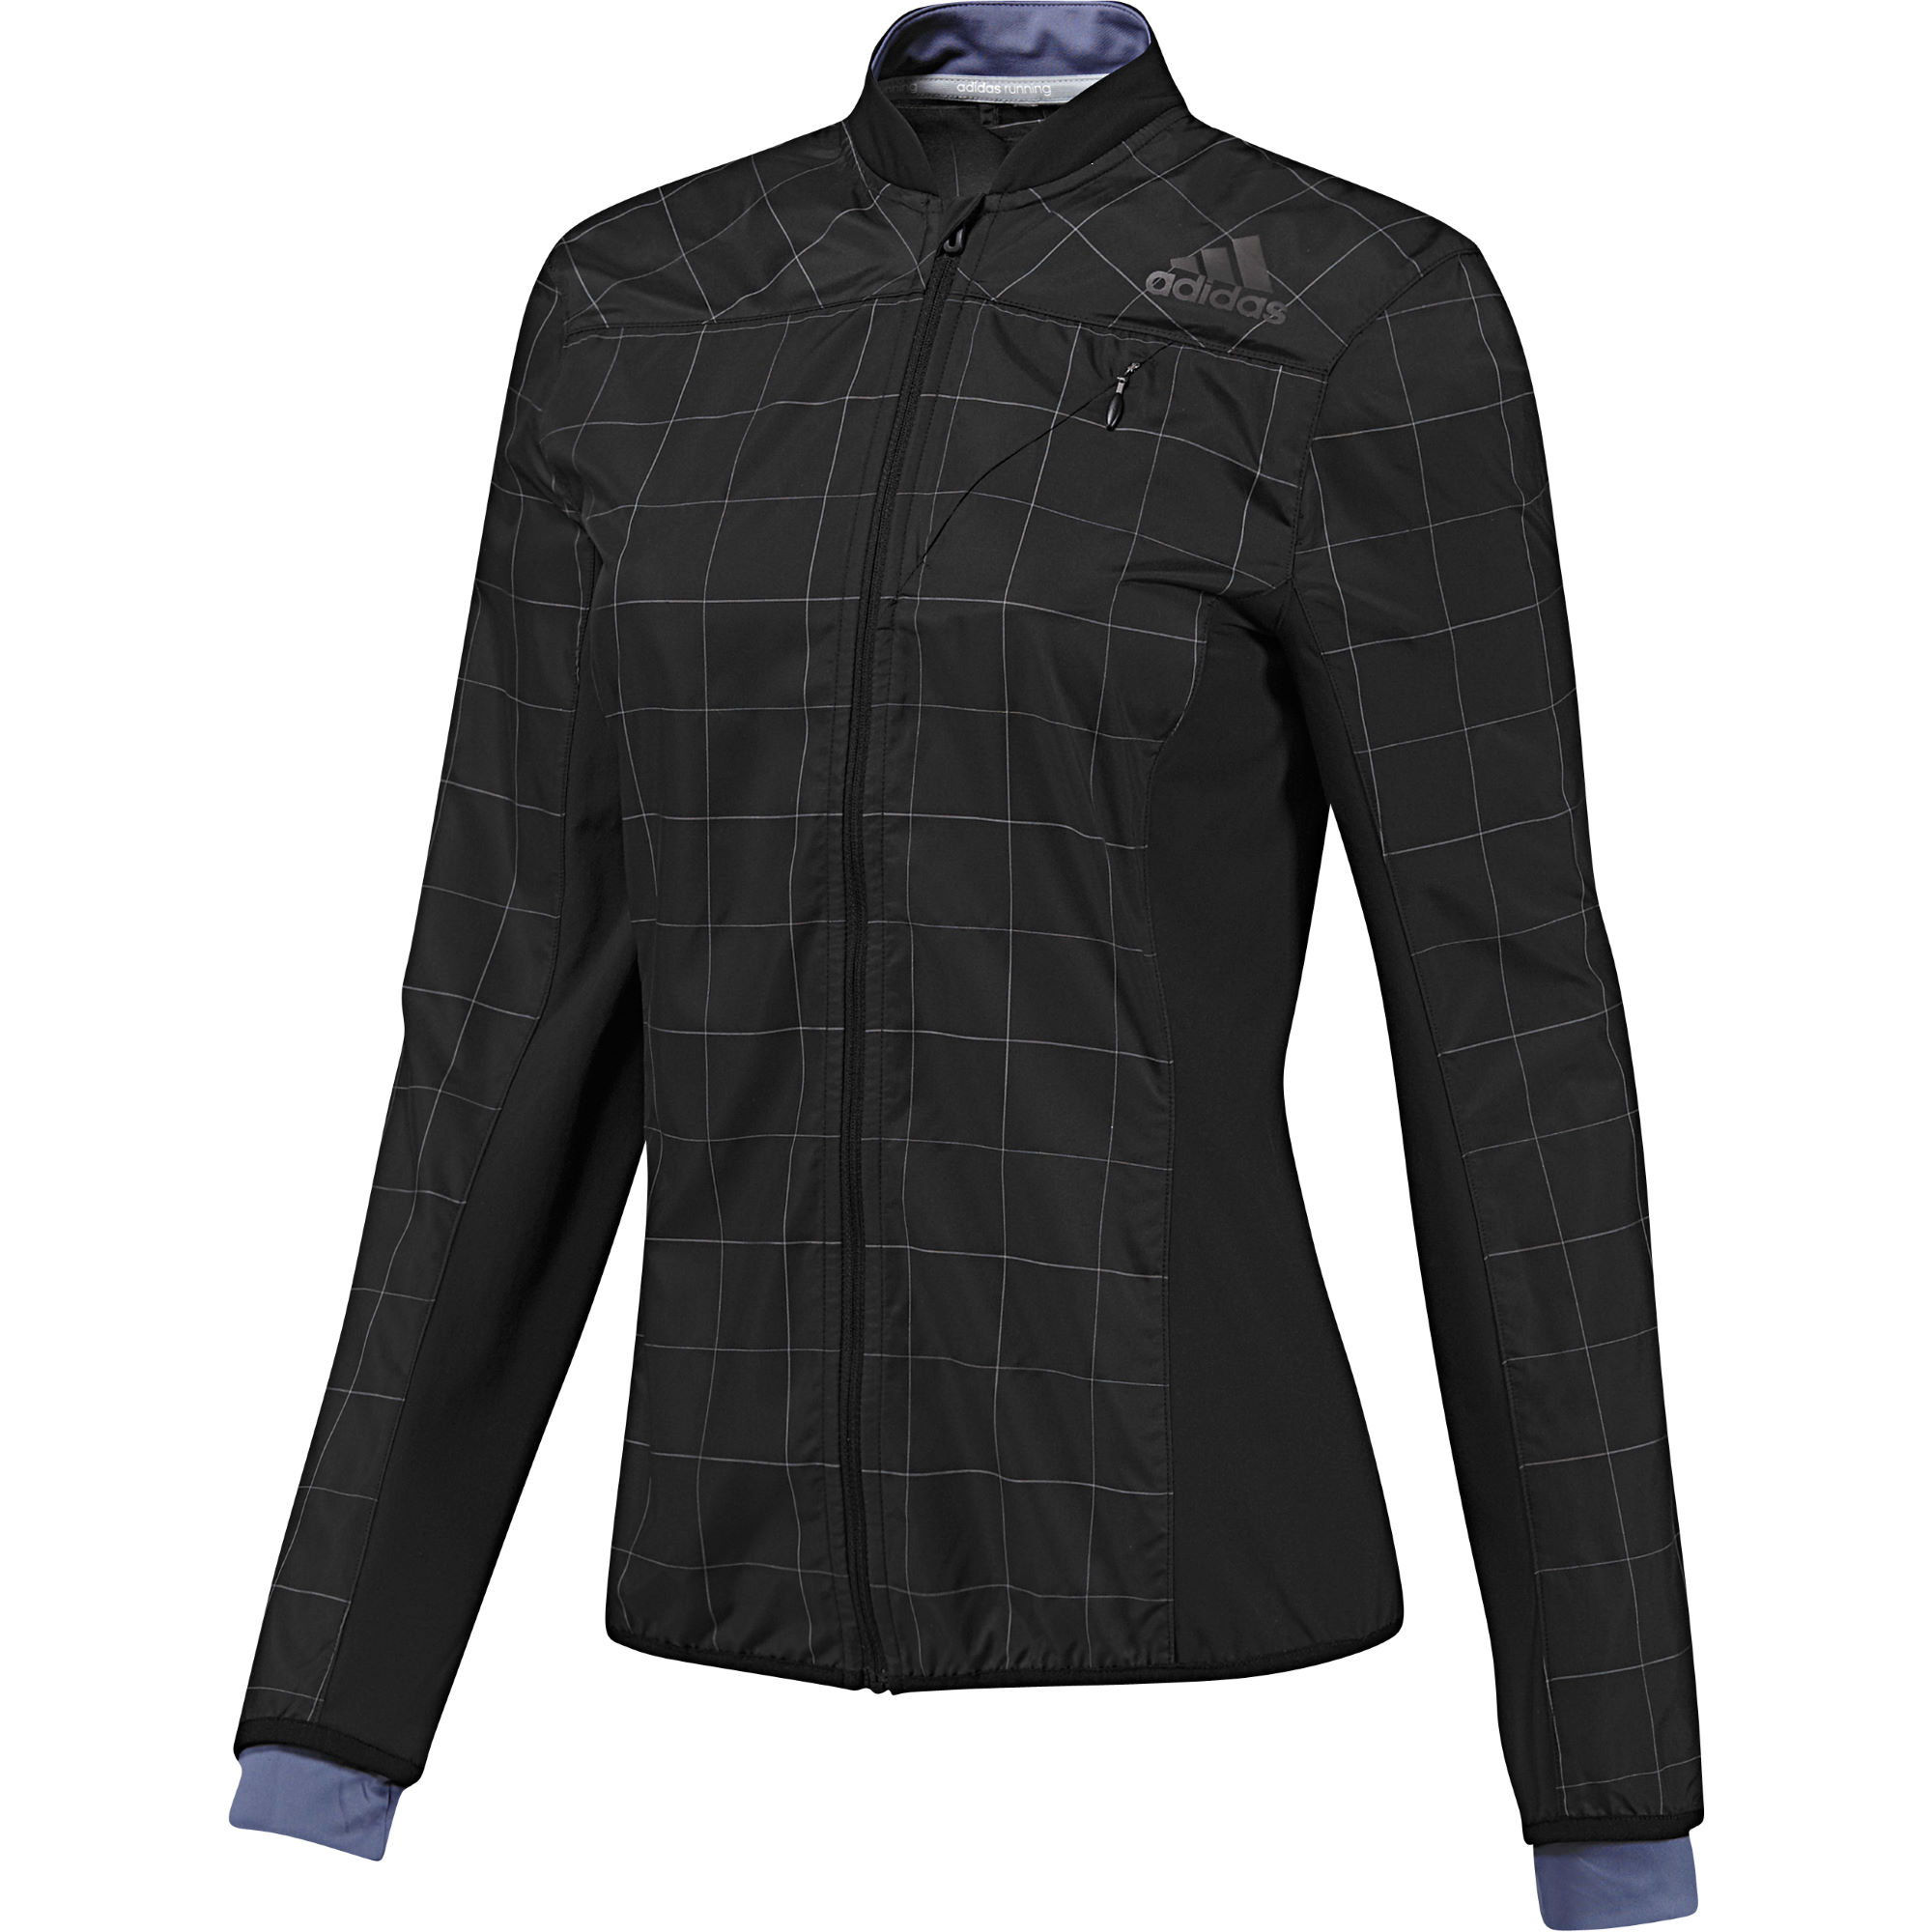 Shop the smart selection of women's blazers with great styles for both casual looks and office outfits. Easily put together a chic weekend ensemble or suit up for work in the sharpest of jackets. For easy casual choices, check out cute blazer jackets to layer over tops.